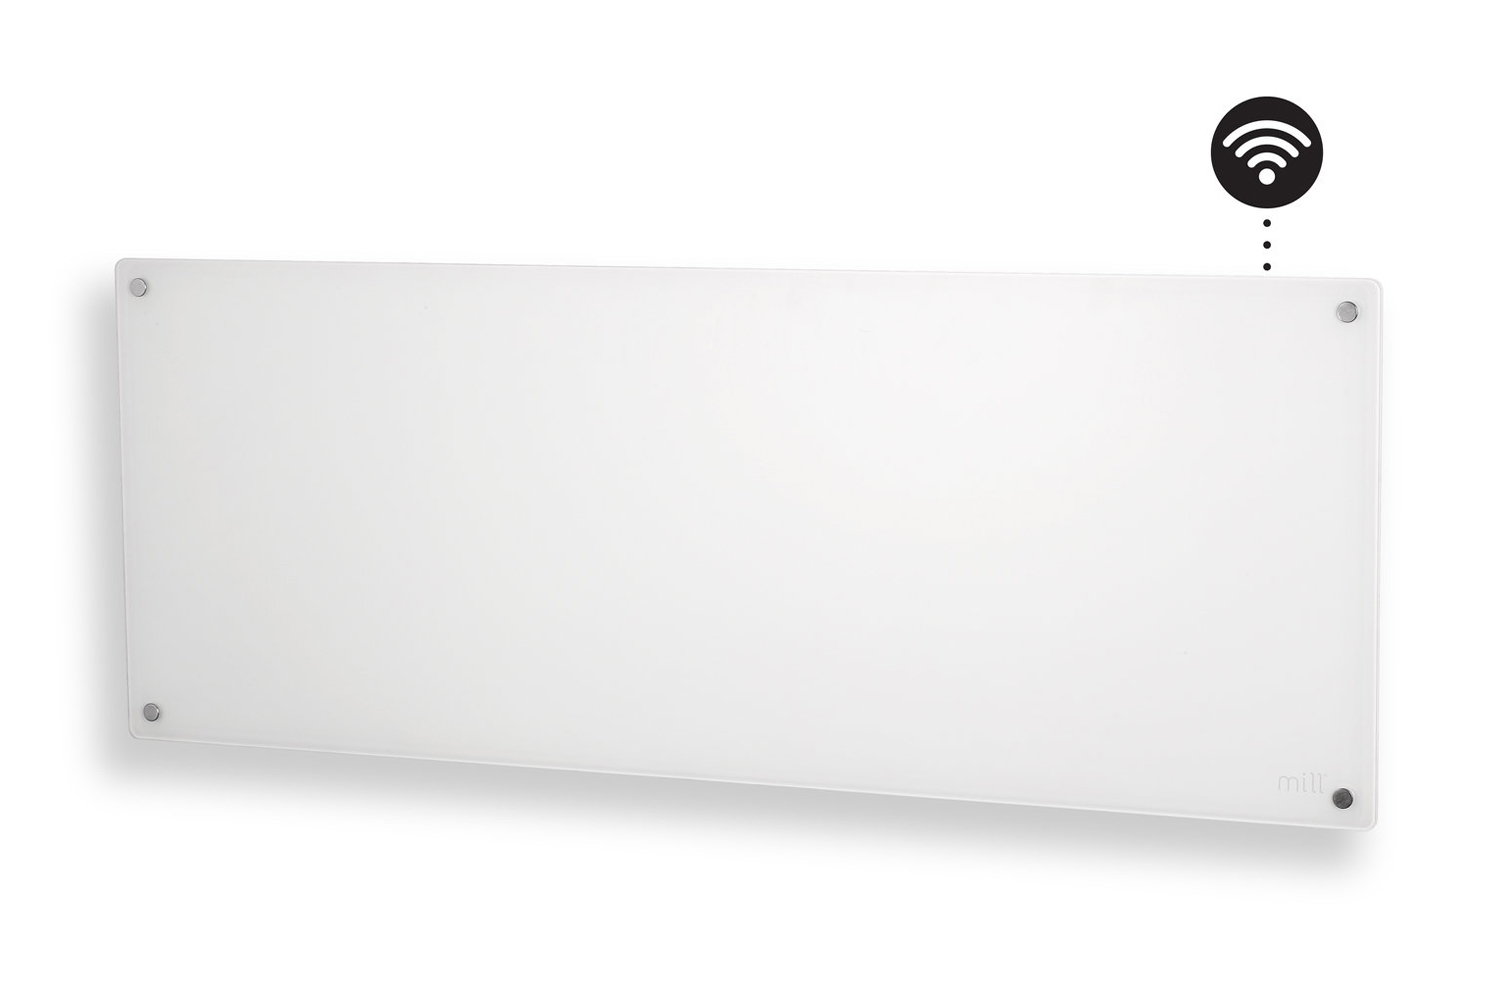 Mill AV1200 wifi heater side view